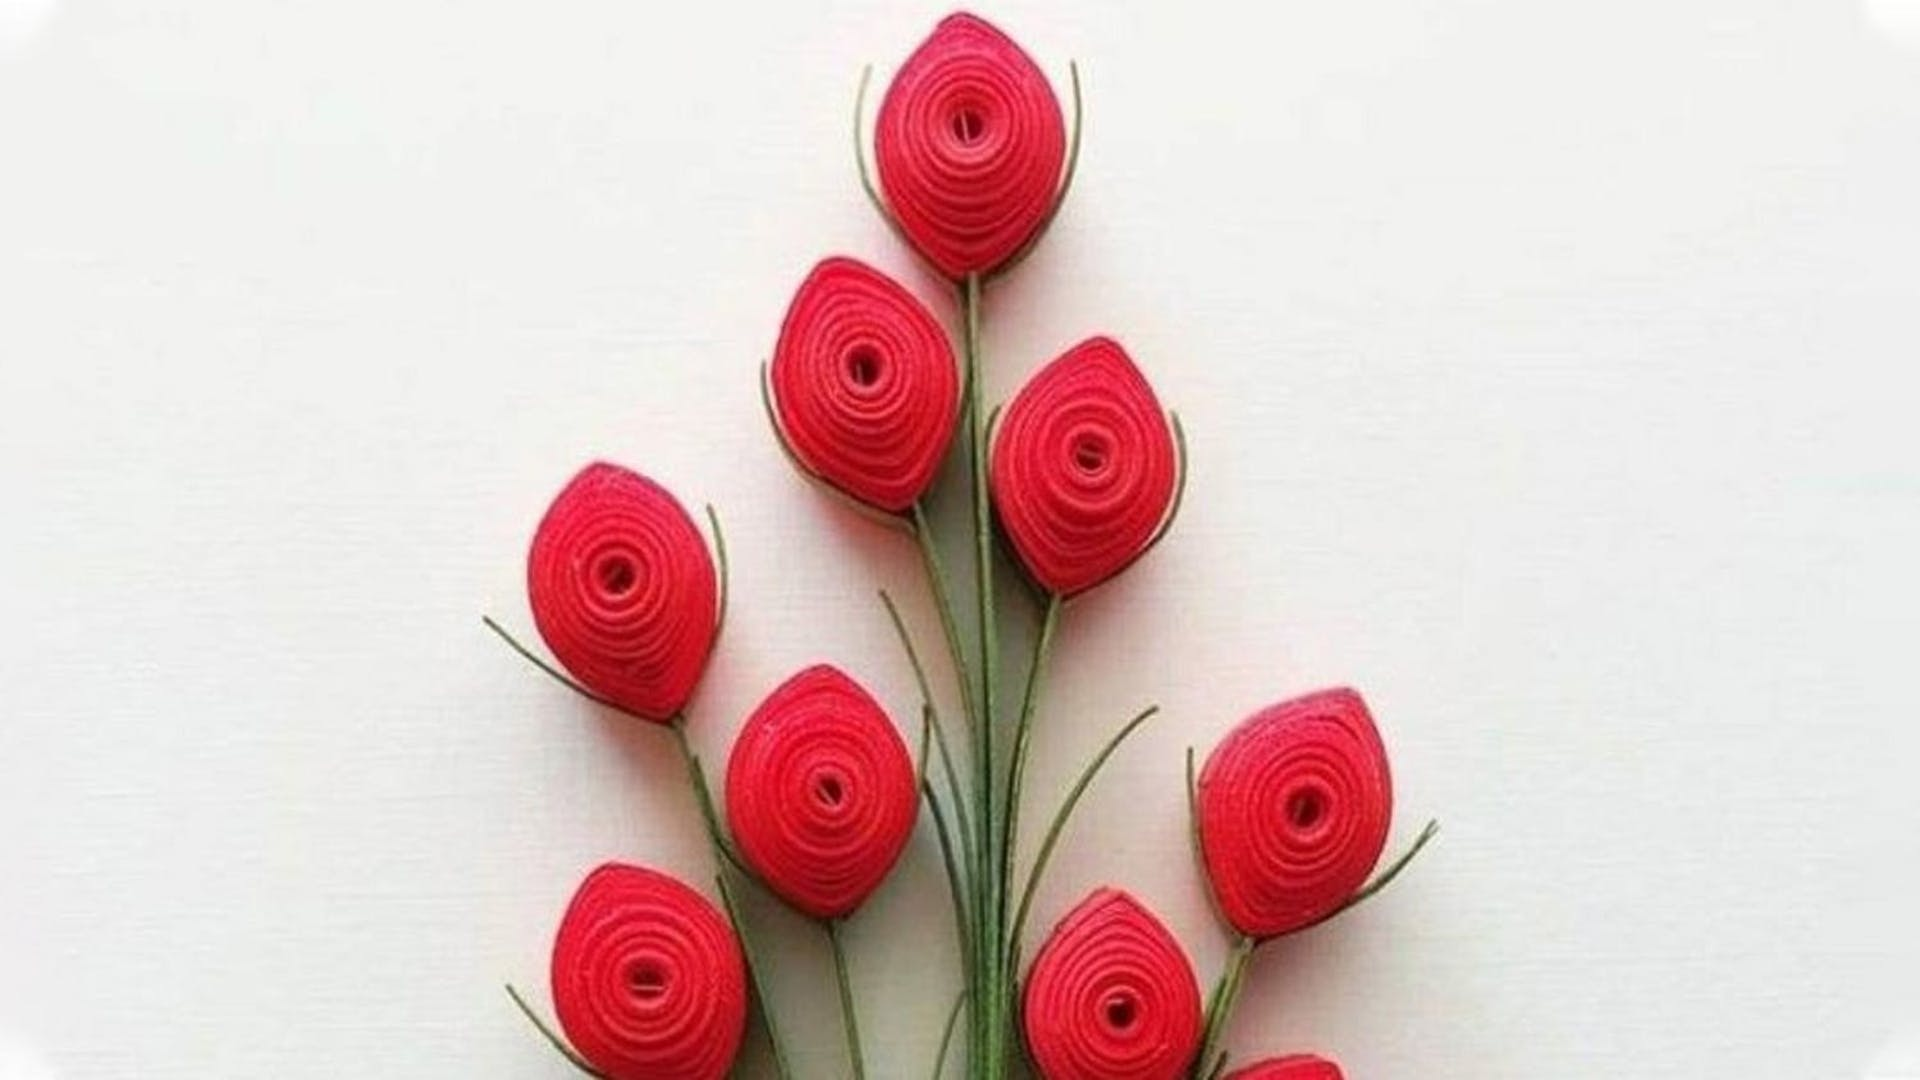 Pink,Red,Flower,Plant,Petal,Material property,Magenta,Paper,Textile,Thread